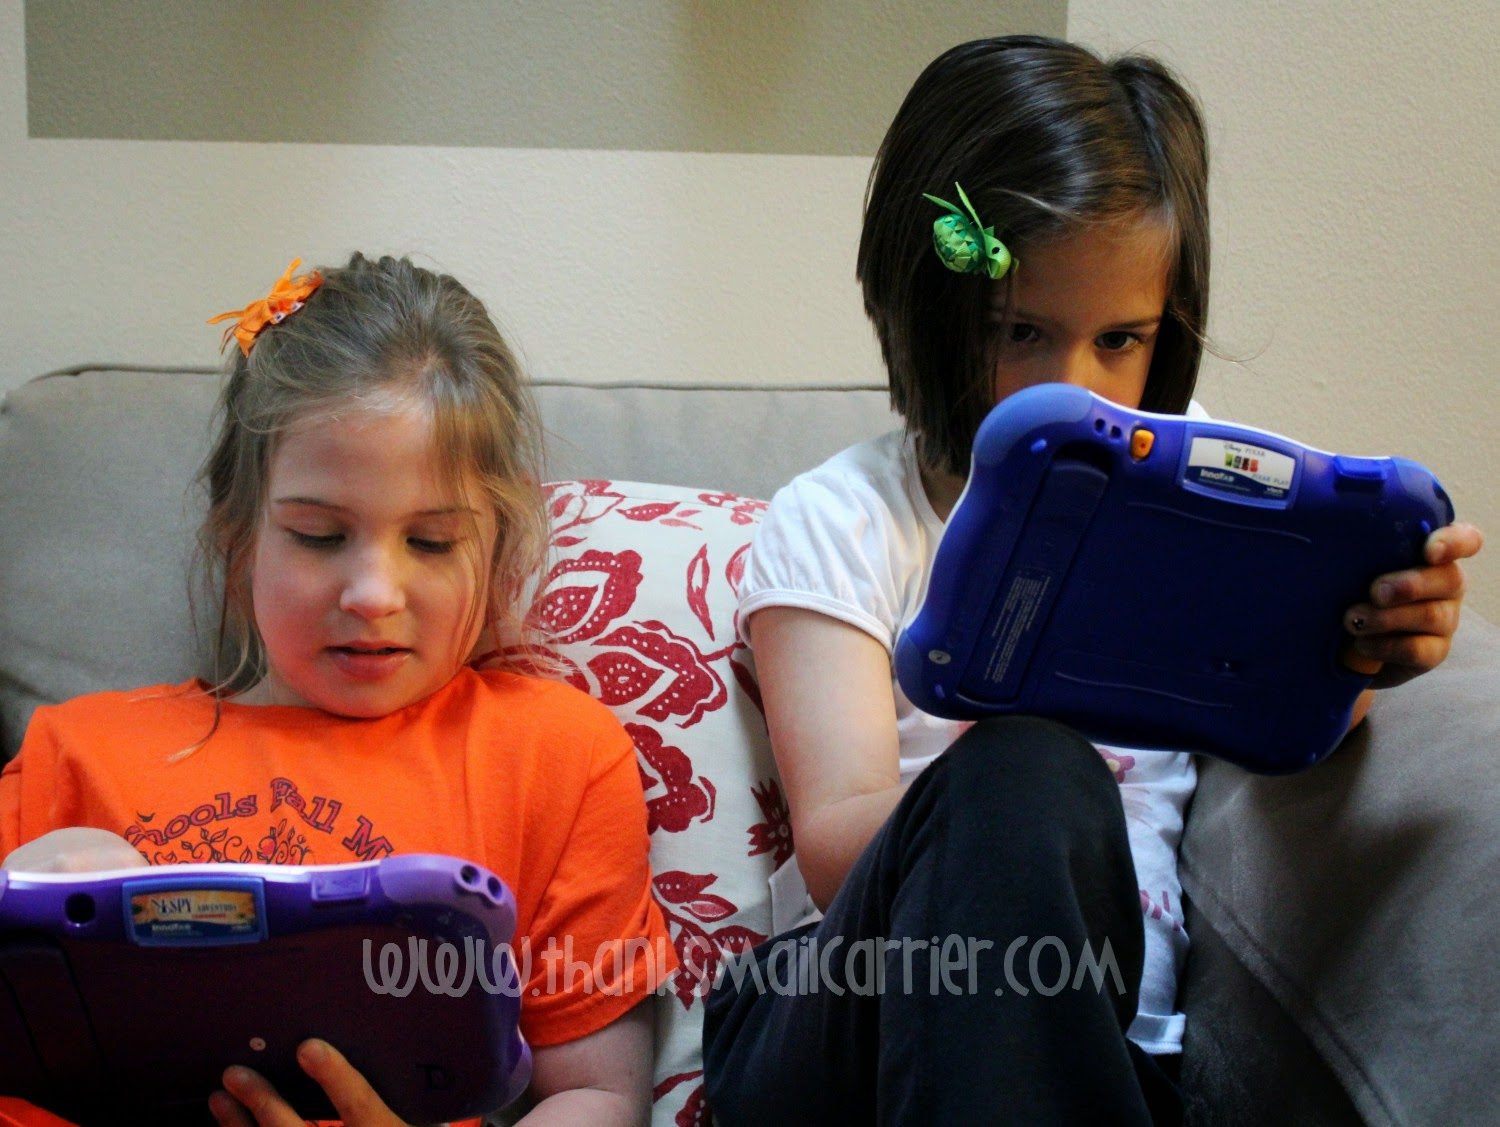 VTech InnoTab Learning Cartridge